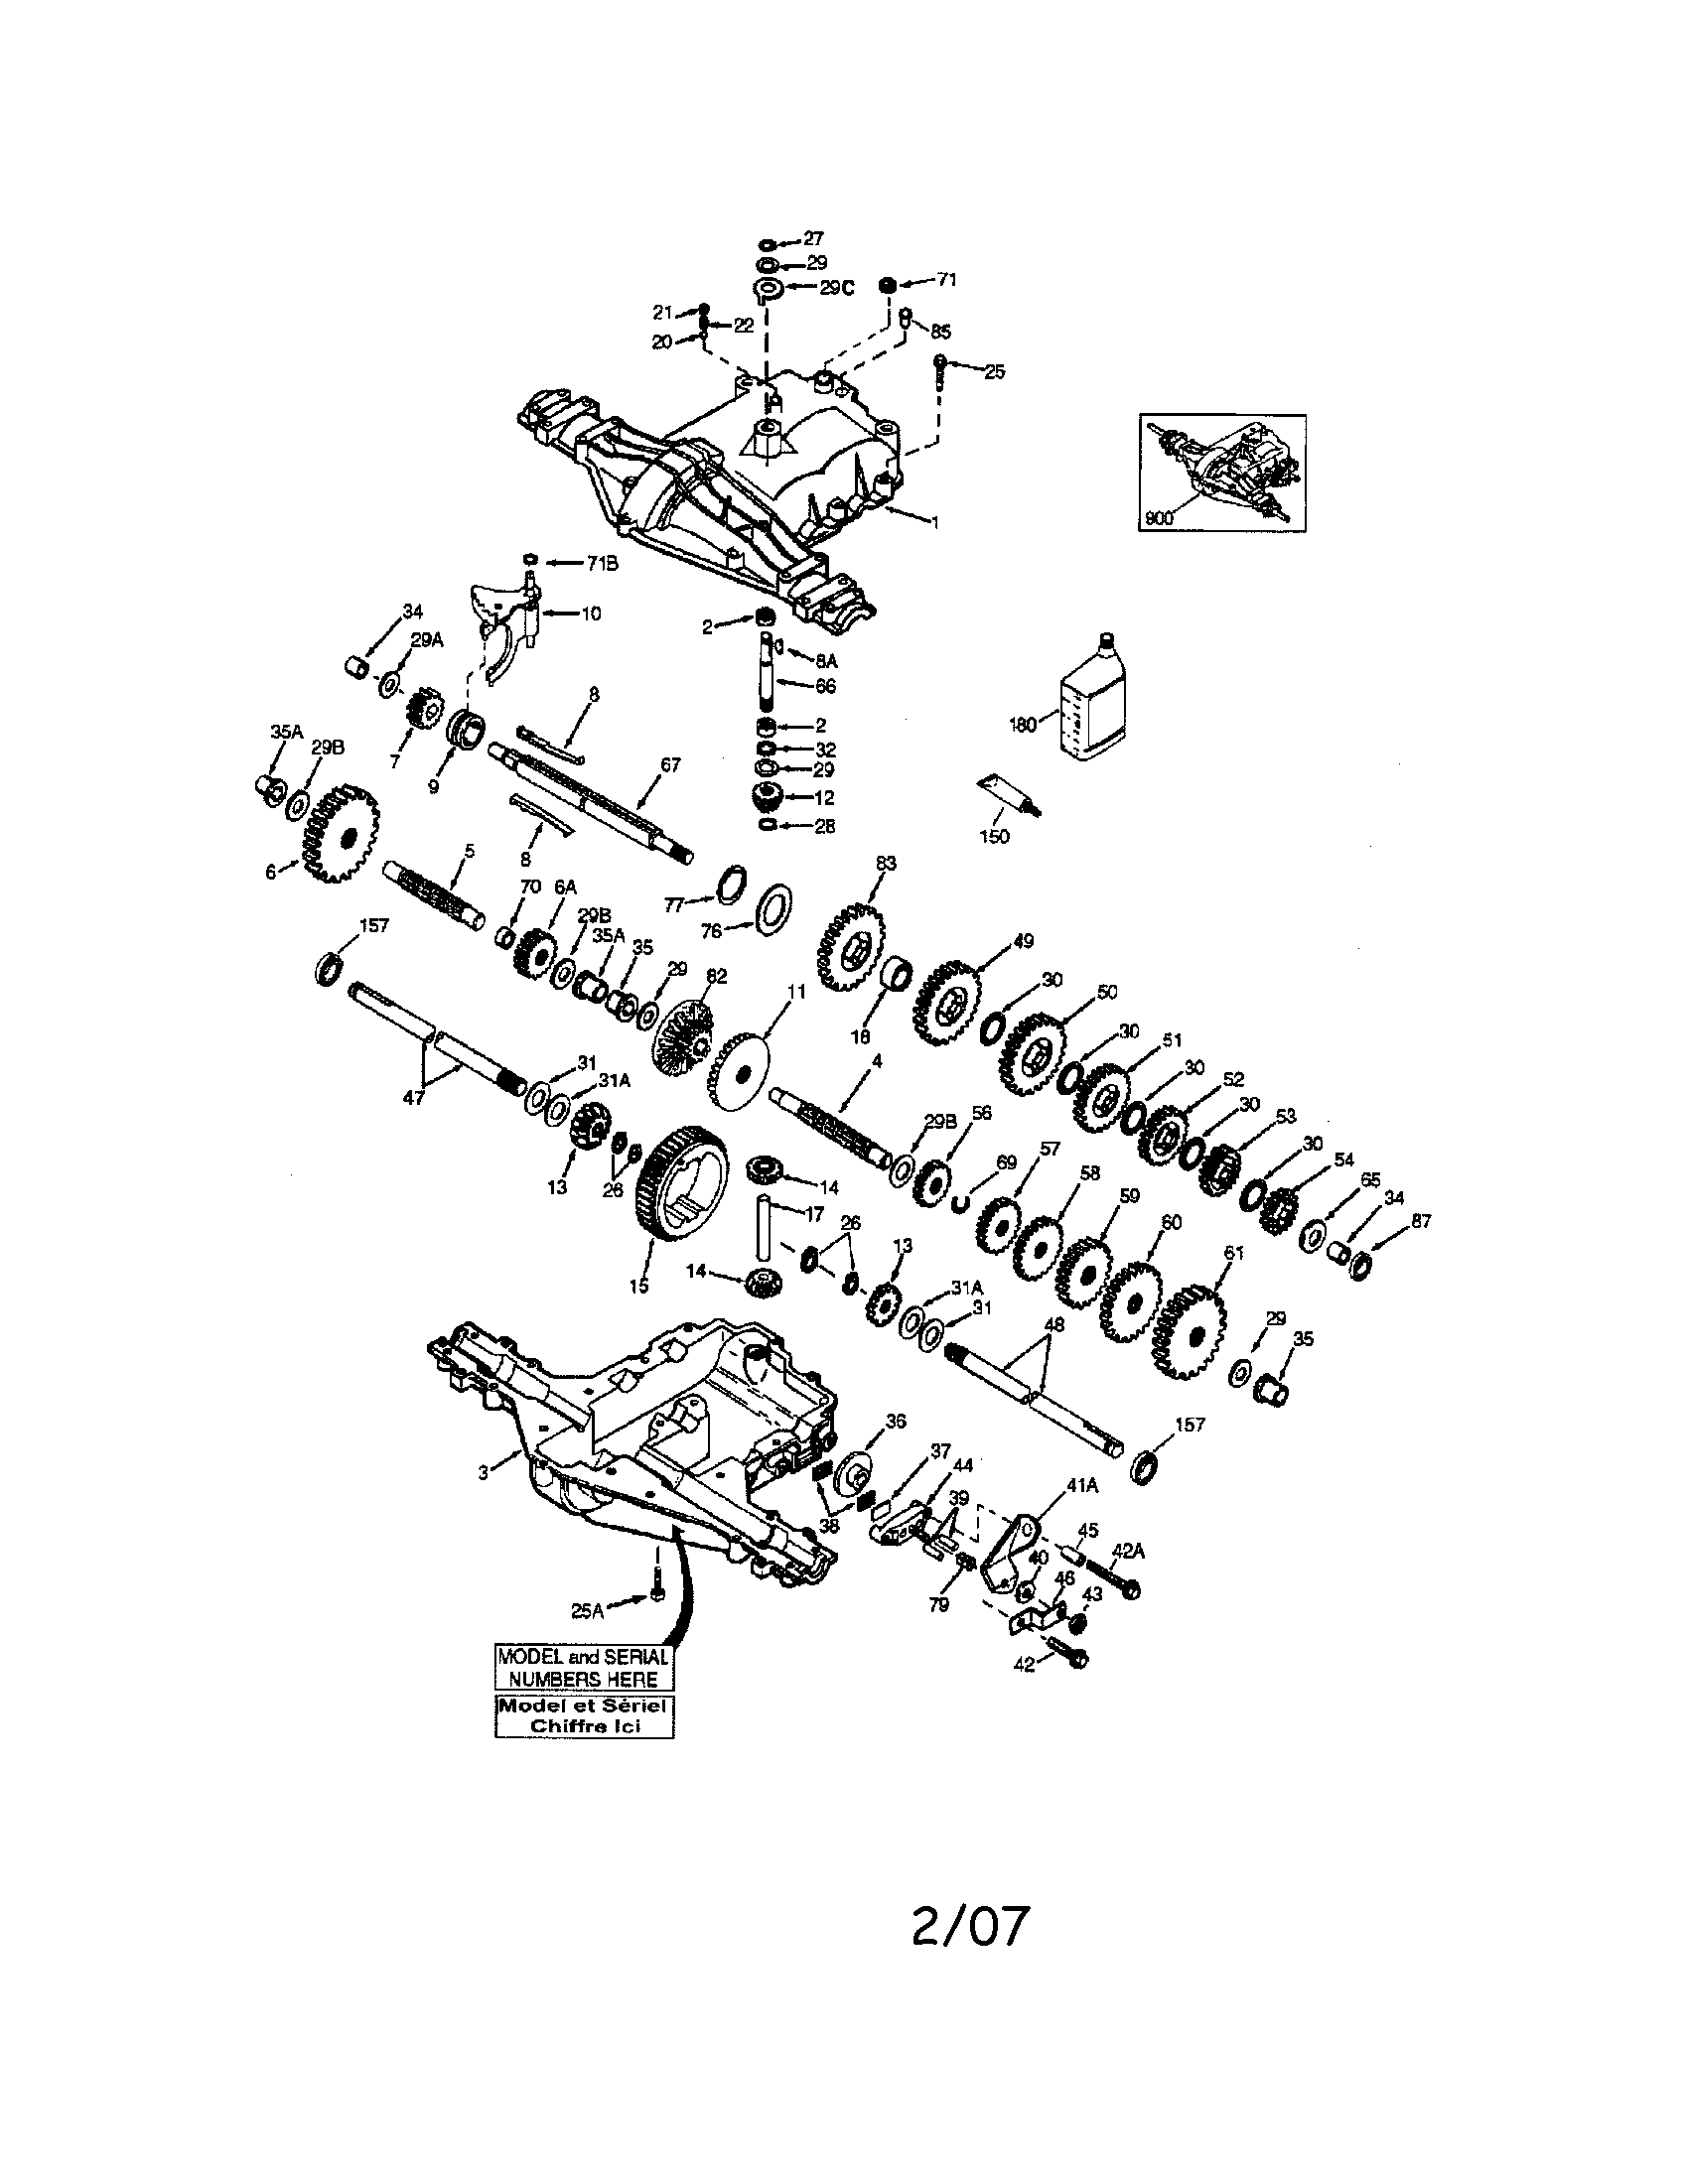 Peerless Transaxle Diagram Amp Parts List For Model Craftsman Parts Riding Mower Tractor